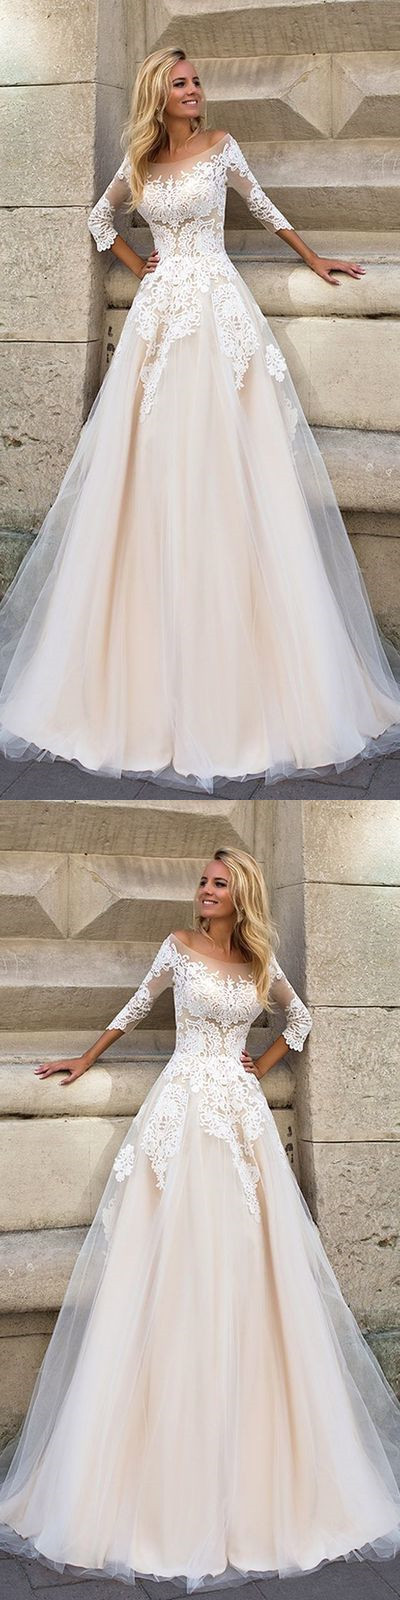 Half Sleeve Tulle Appliques Wedding Dress, Elegant Wedding Gown, Formal Bridal